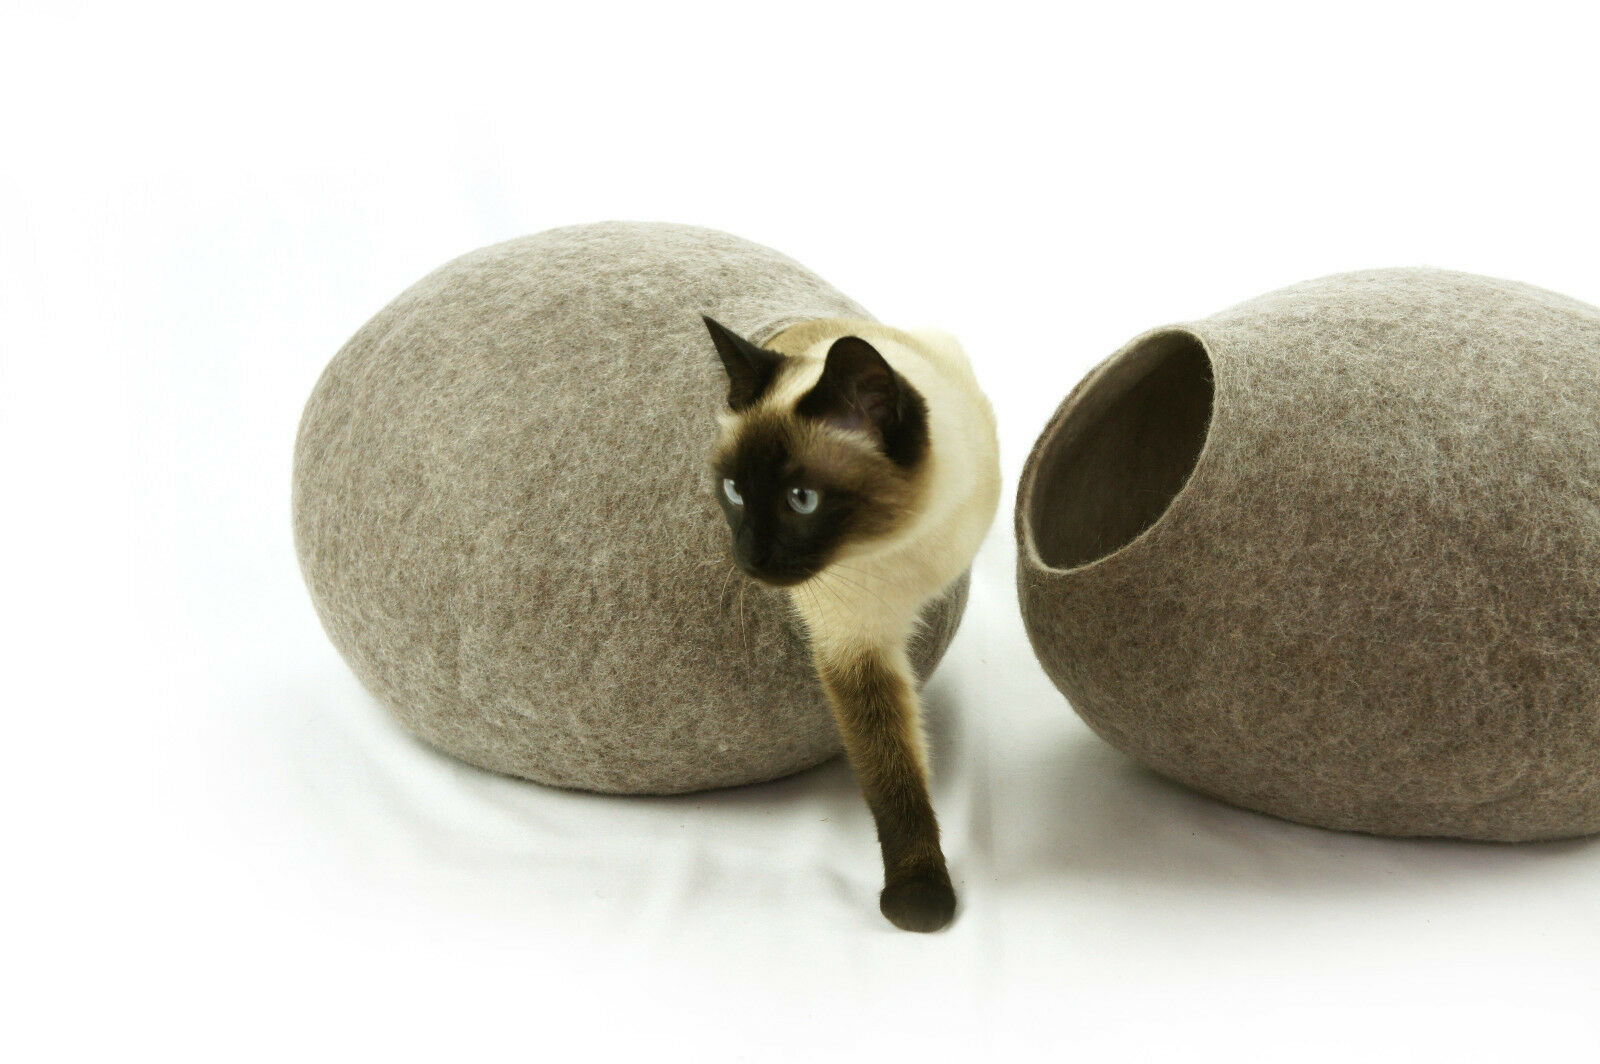 Cat Bed, House, Cave, Nap Cocoon, Igloo, 100% Handmade from from from sheep wool 11beb9